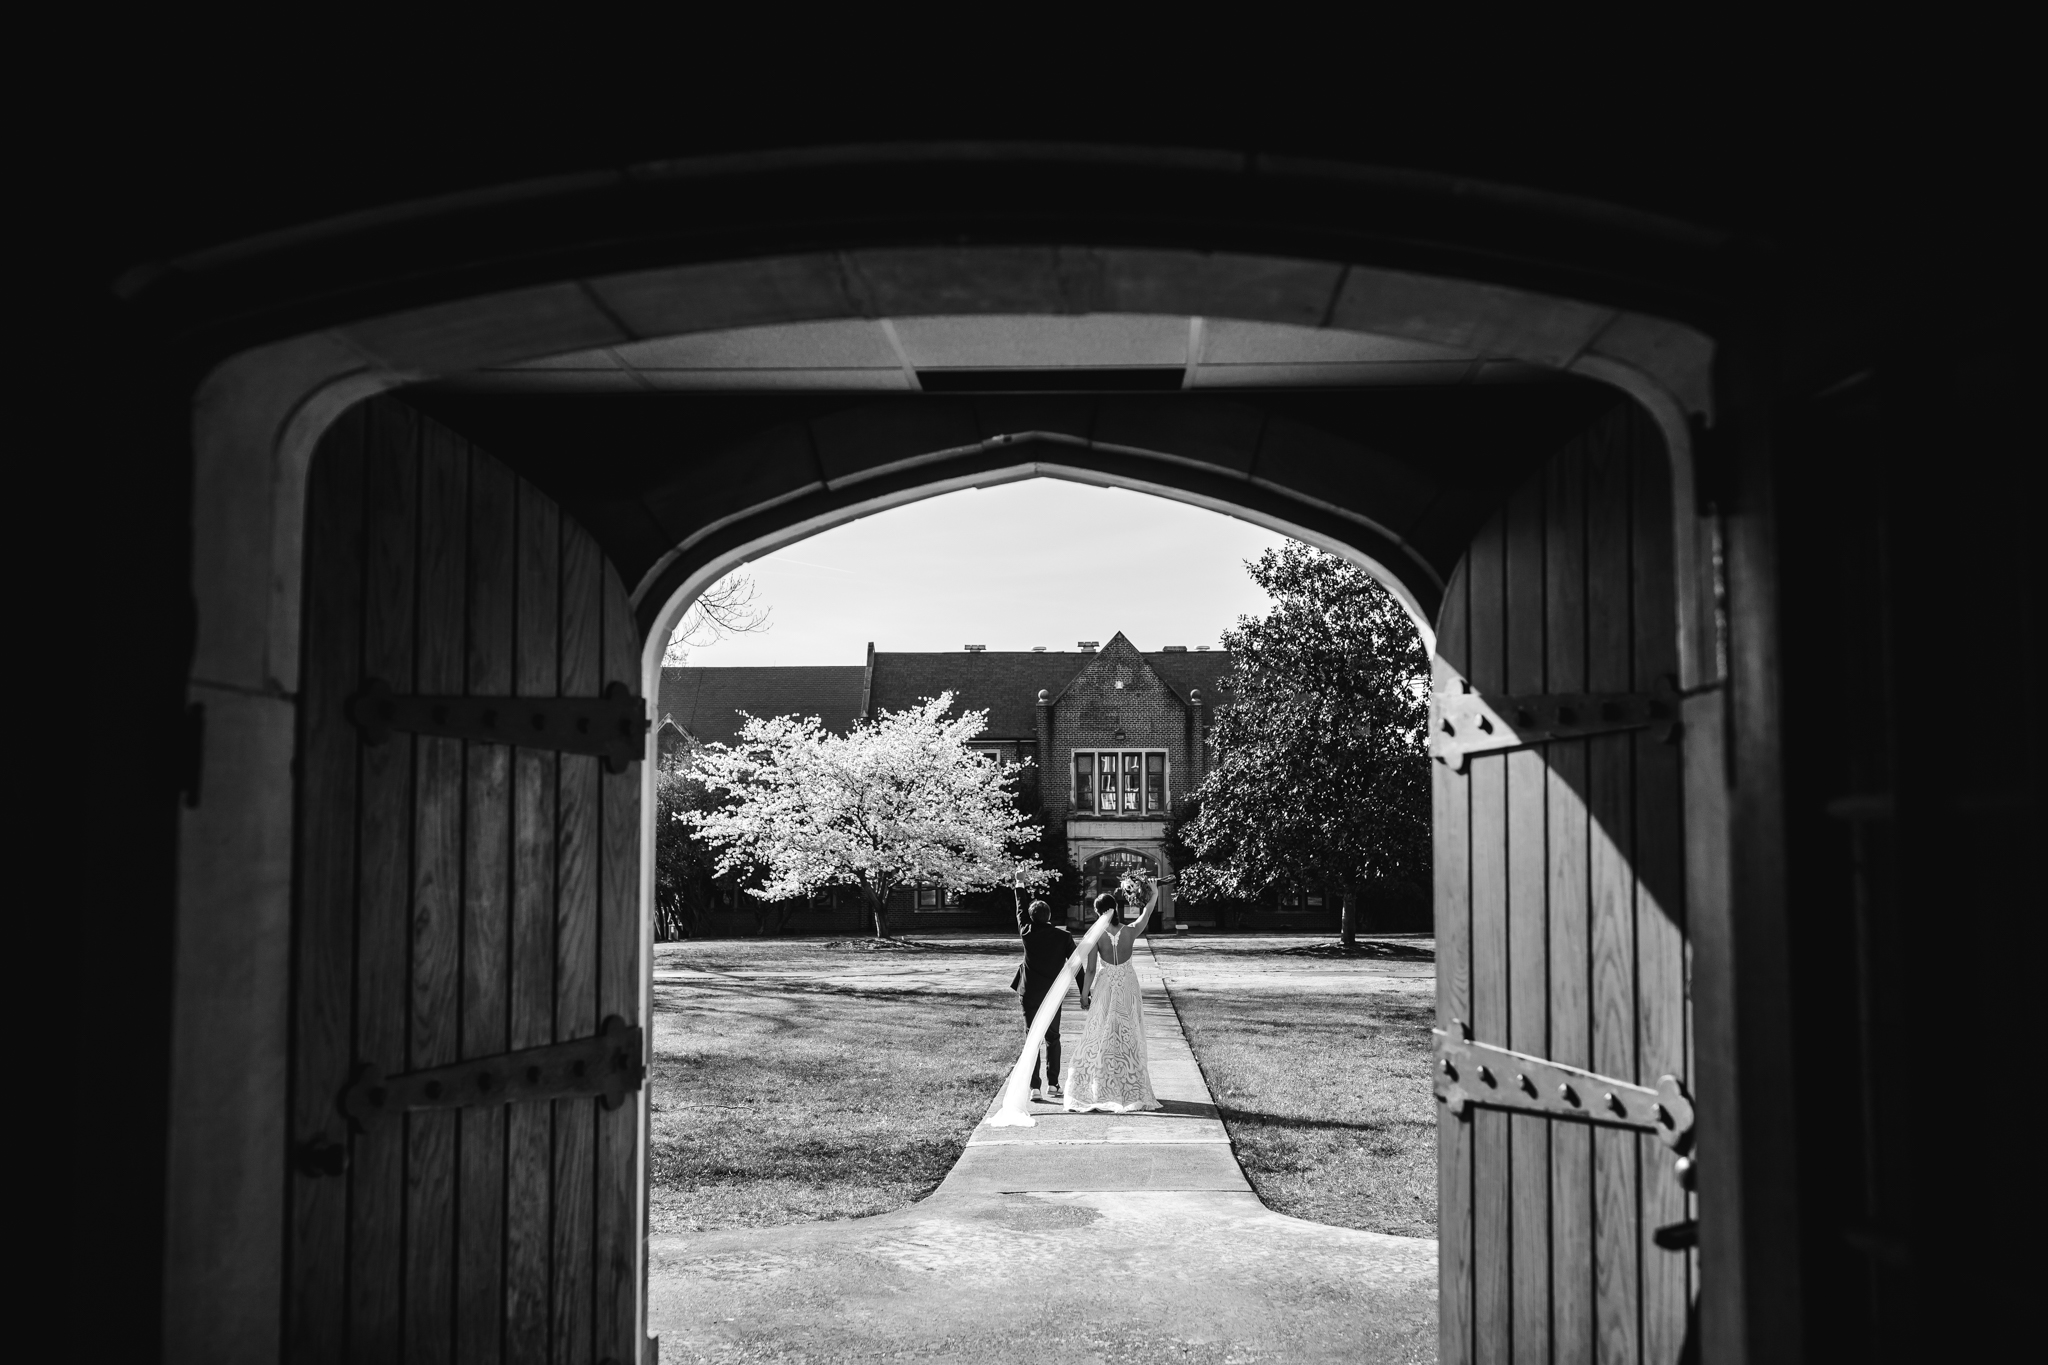 chattanooga-wedding-photographers-thewarmtharoundyou-waterhouse-pavilion-patten-chapel-wedding-sam-dusty (137 of 269).jpg